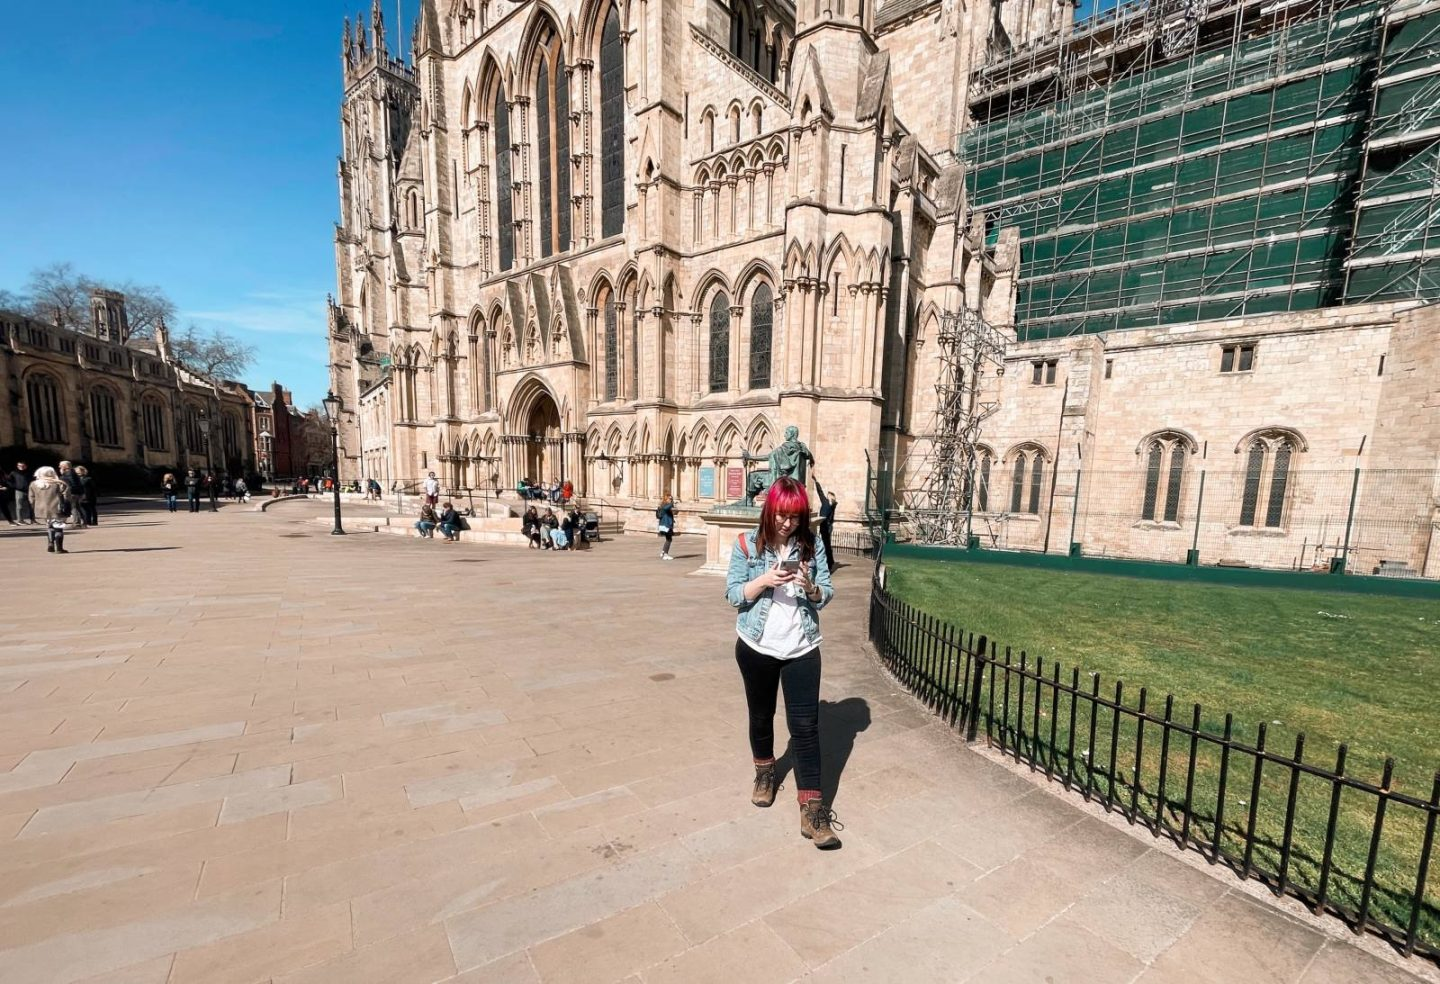 Woman with pink hair in front of York Catherdral doing a treasure hunt. Wearing black skinny jeans and walking boots